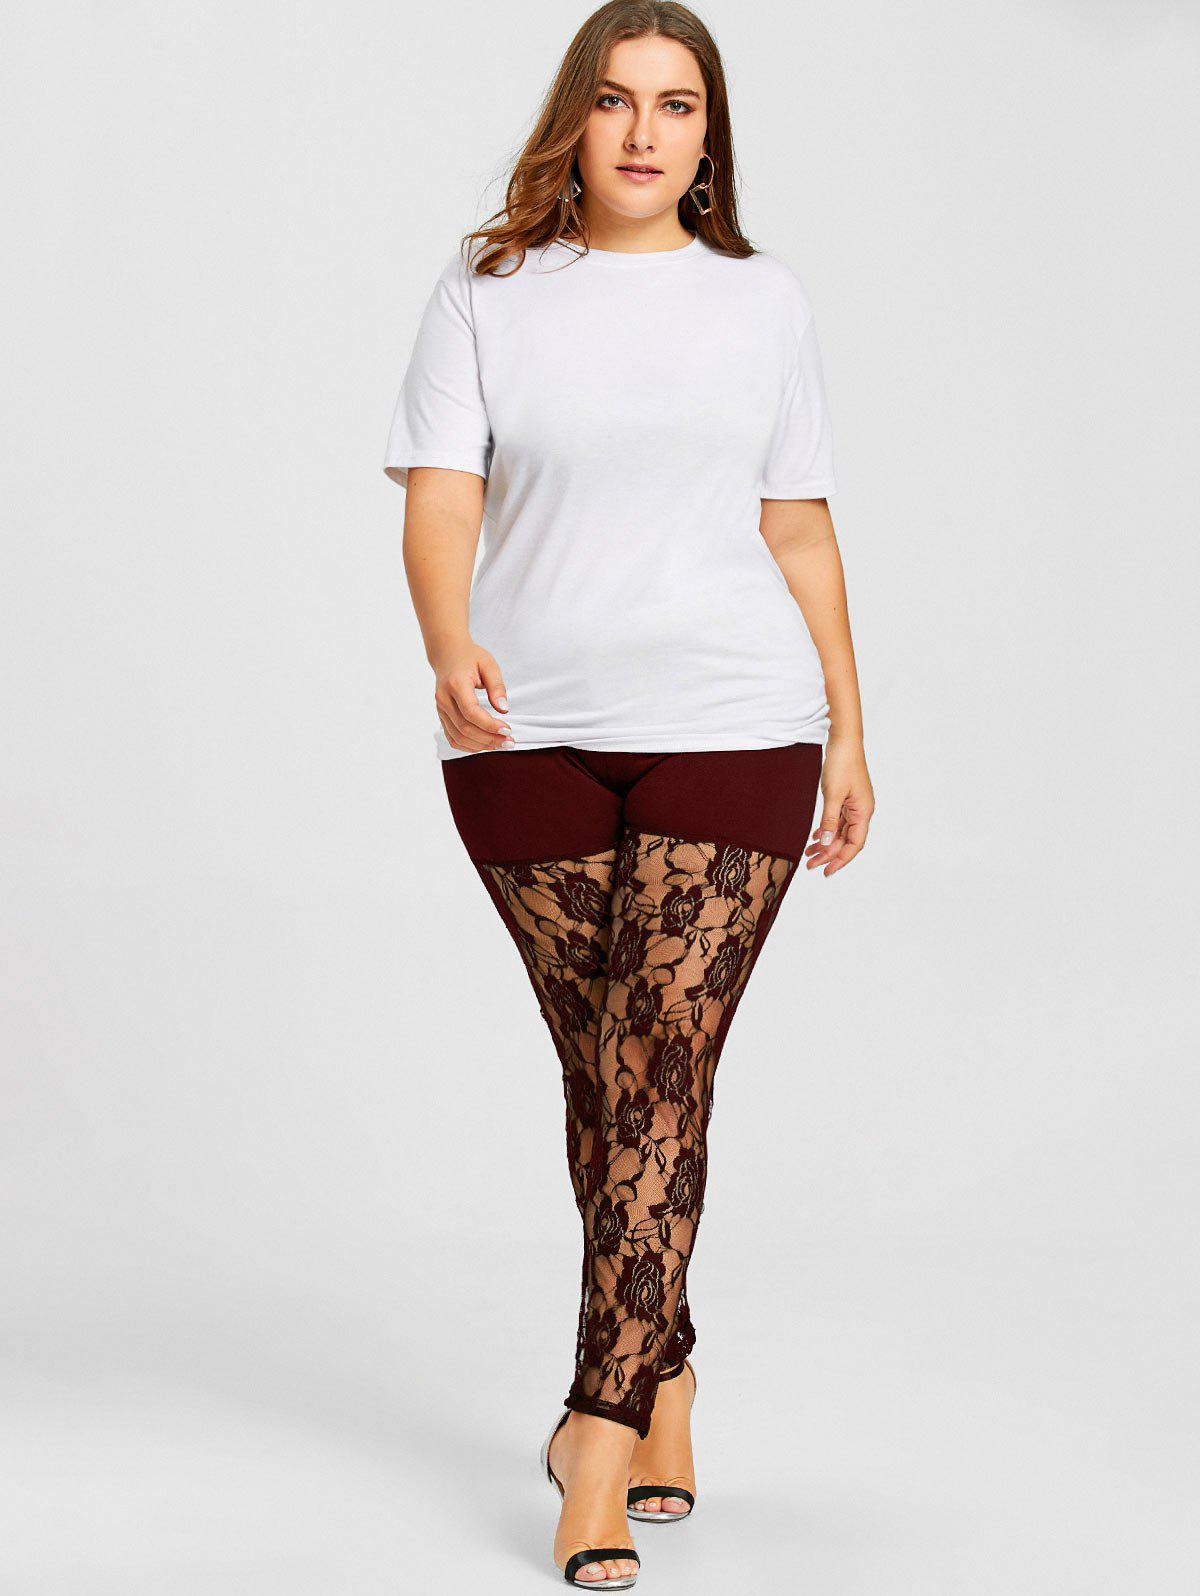 Sheer Lace Panel Plus Size Leggings - WINE RED XL